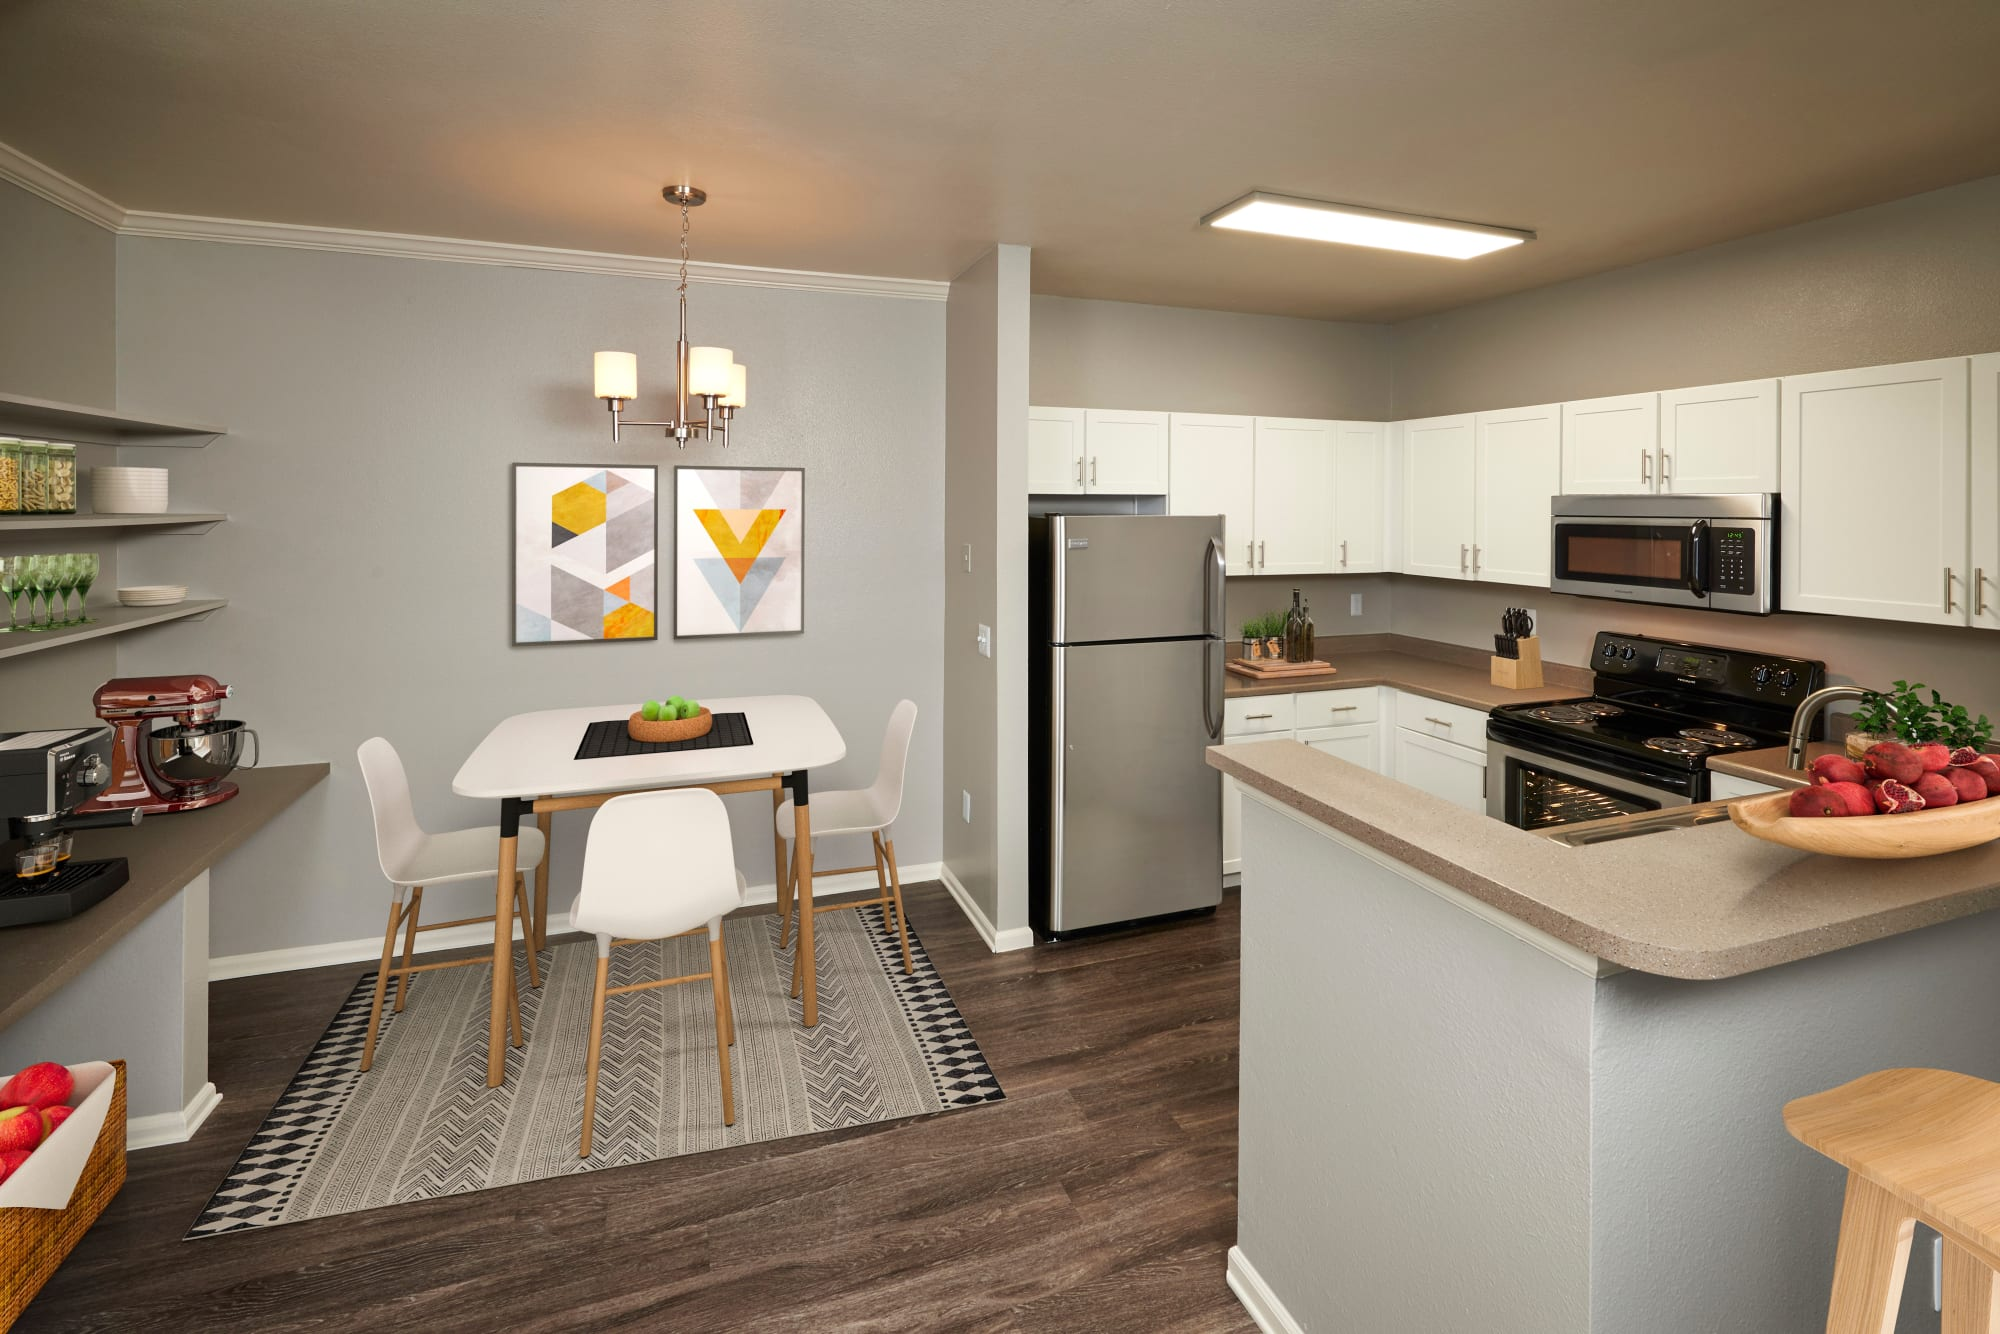 Newly renovated home with white kitchen cabinetry and stainless steel appliances at Westridge Apartments in Aurora, Colorado